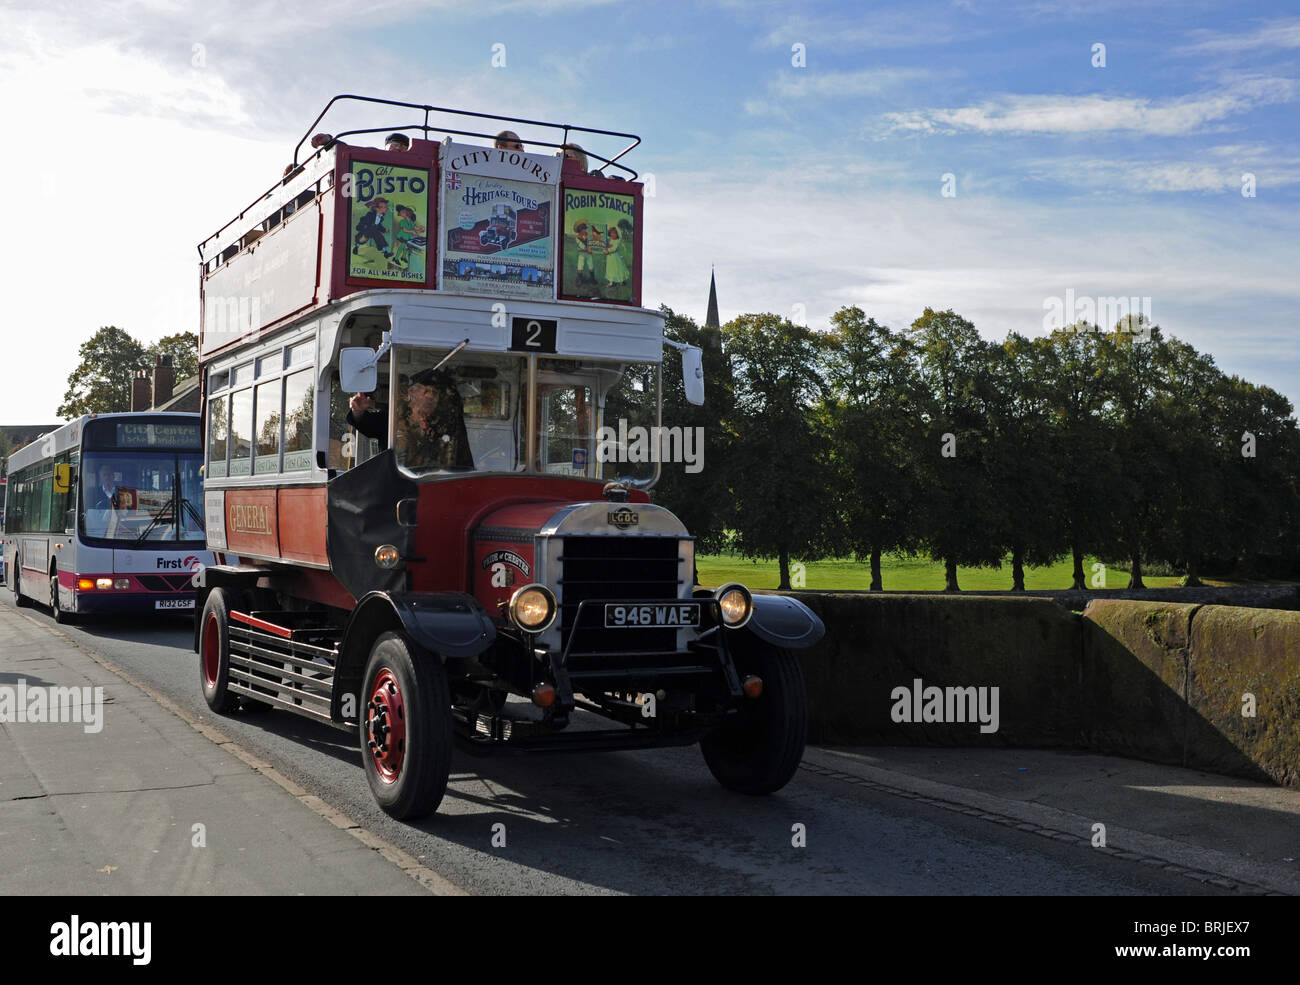 Open top vintage tourist bus in Chester city centre UK - Stock Image